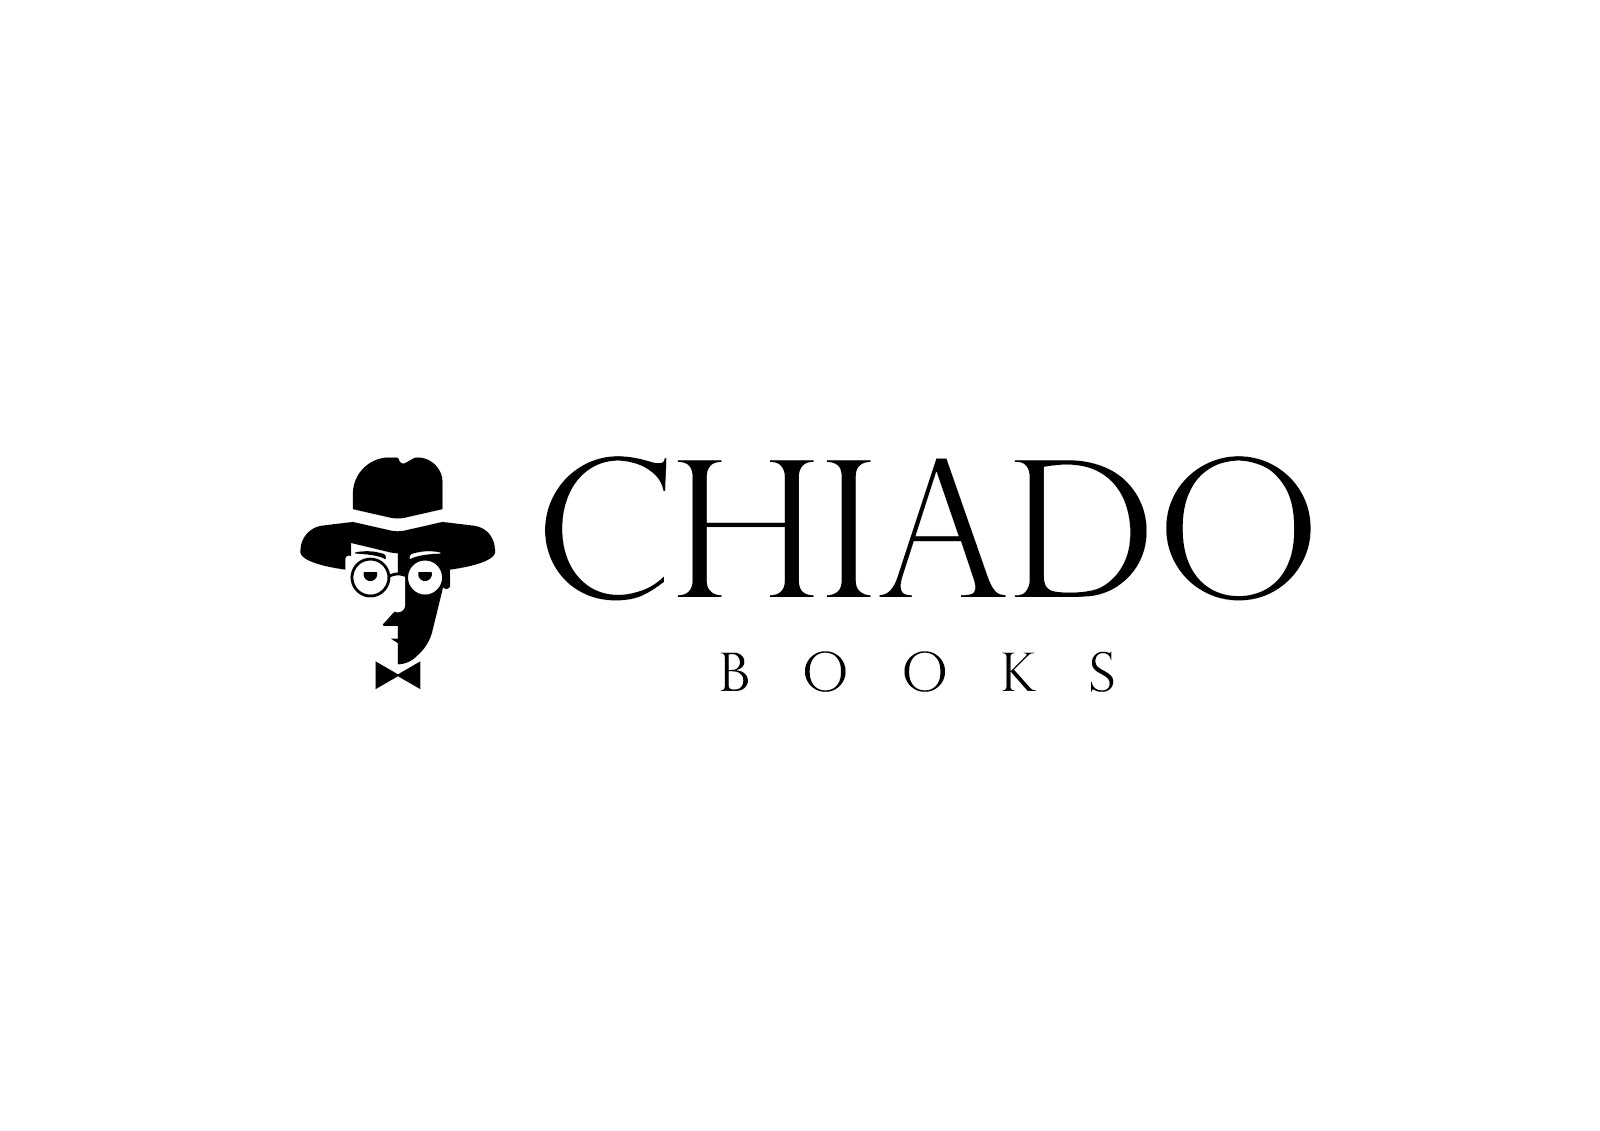 Chiado Books No Facebook